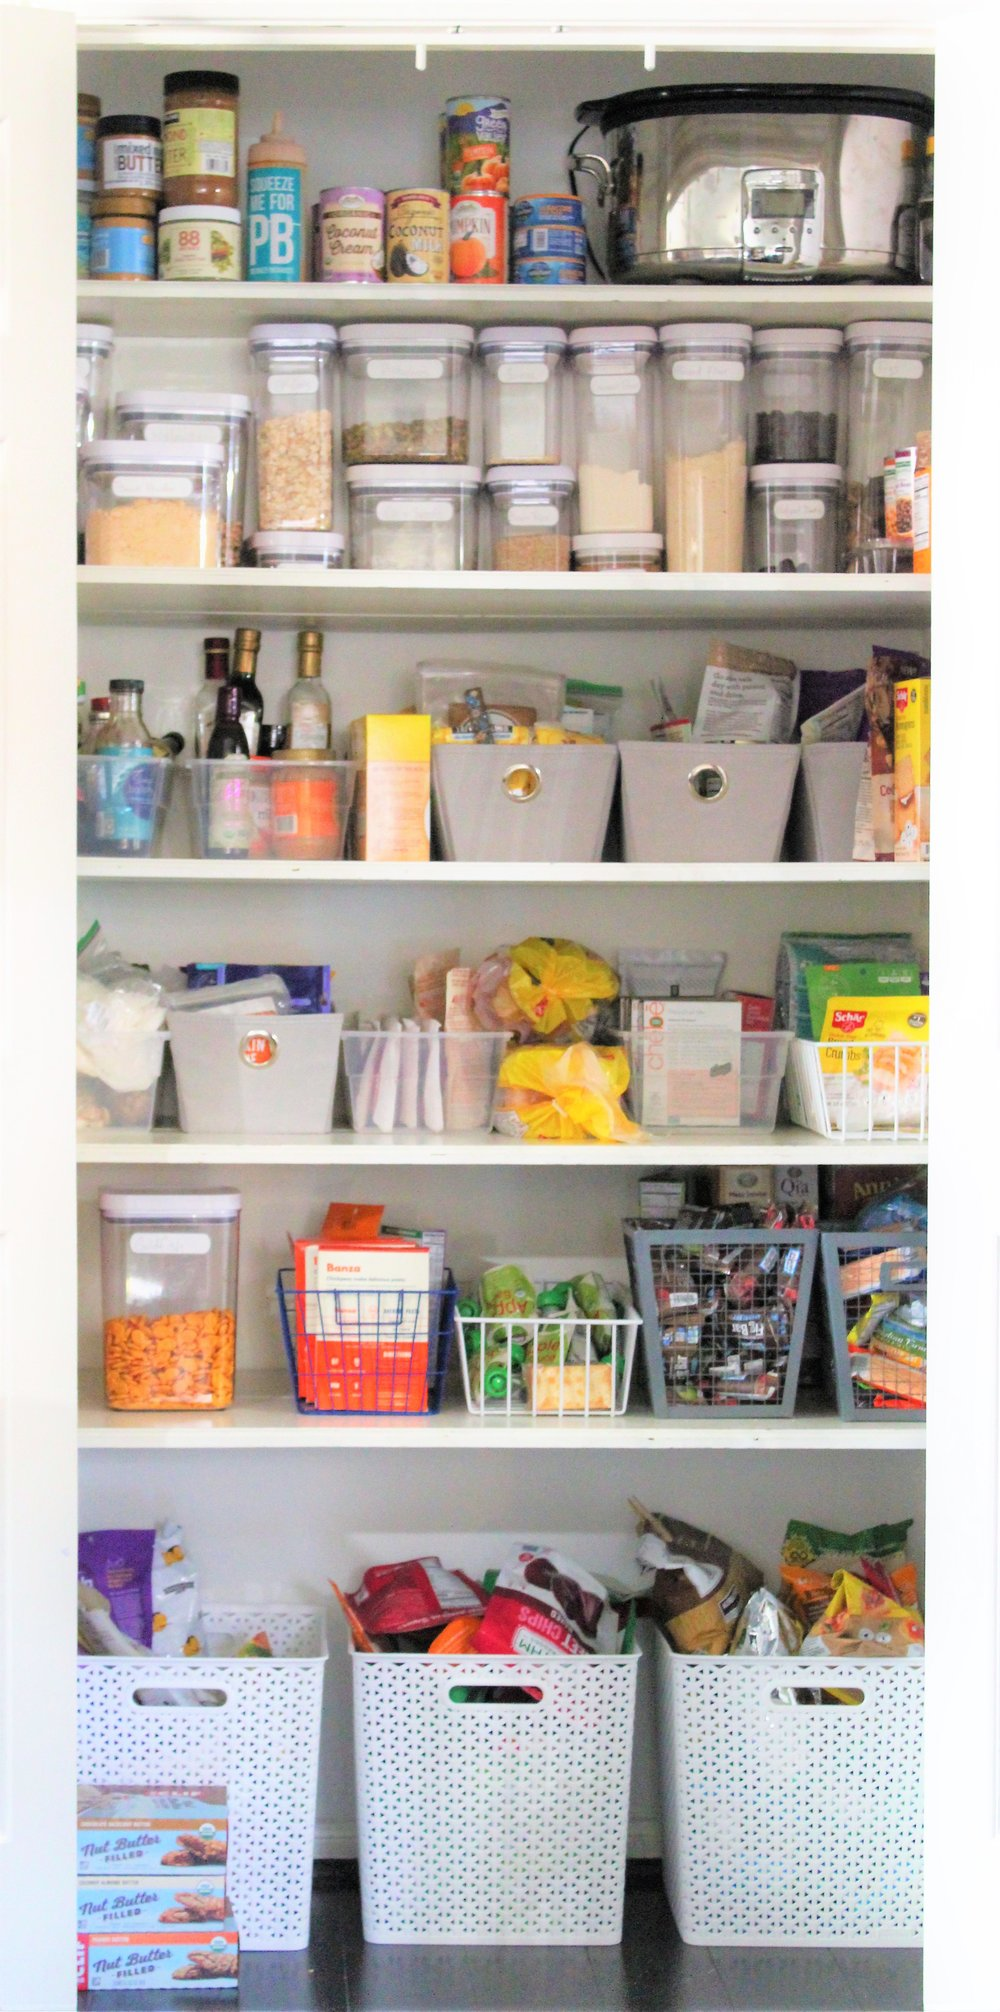 9 simple steps to achieving a clutter free pantry